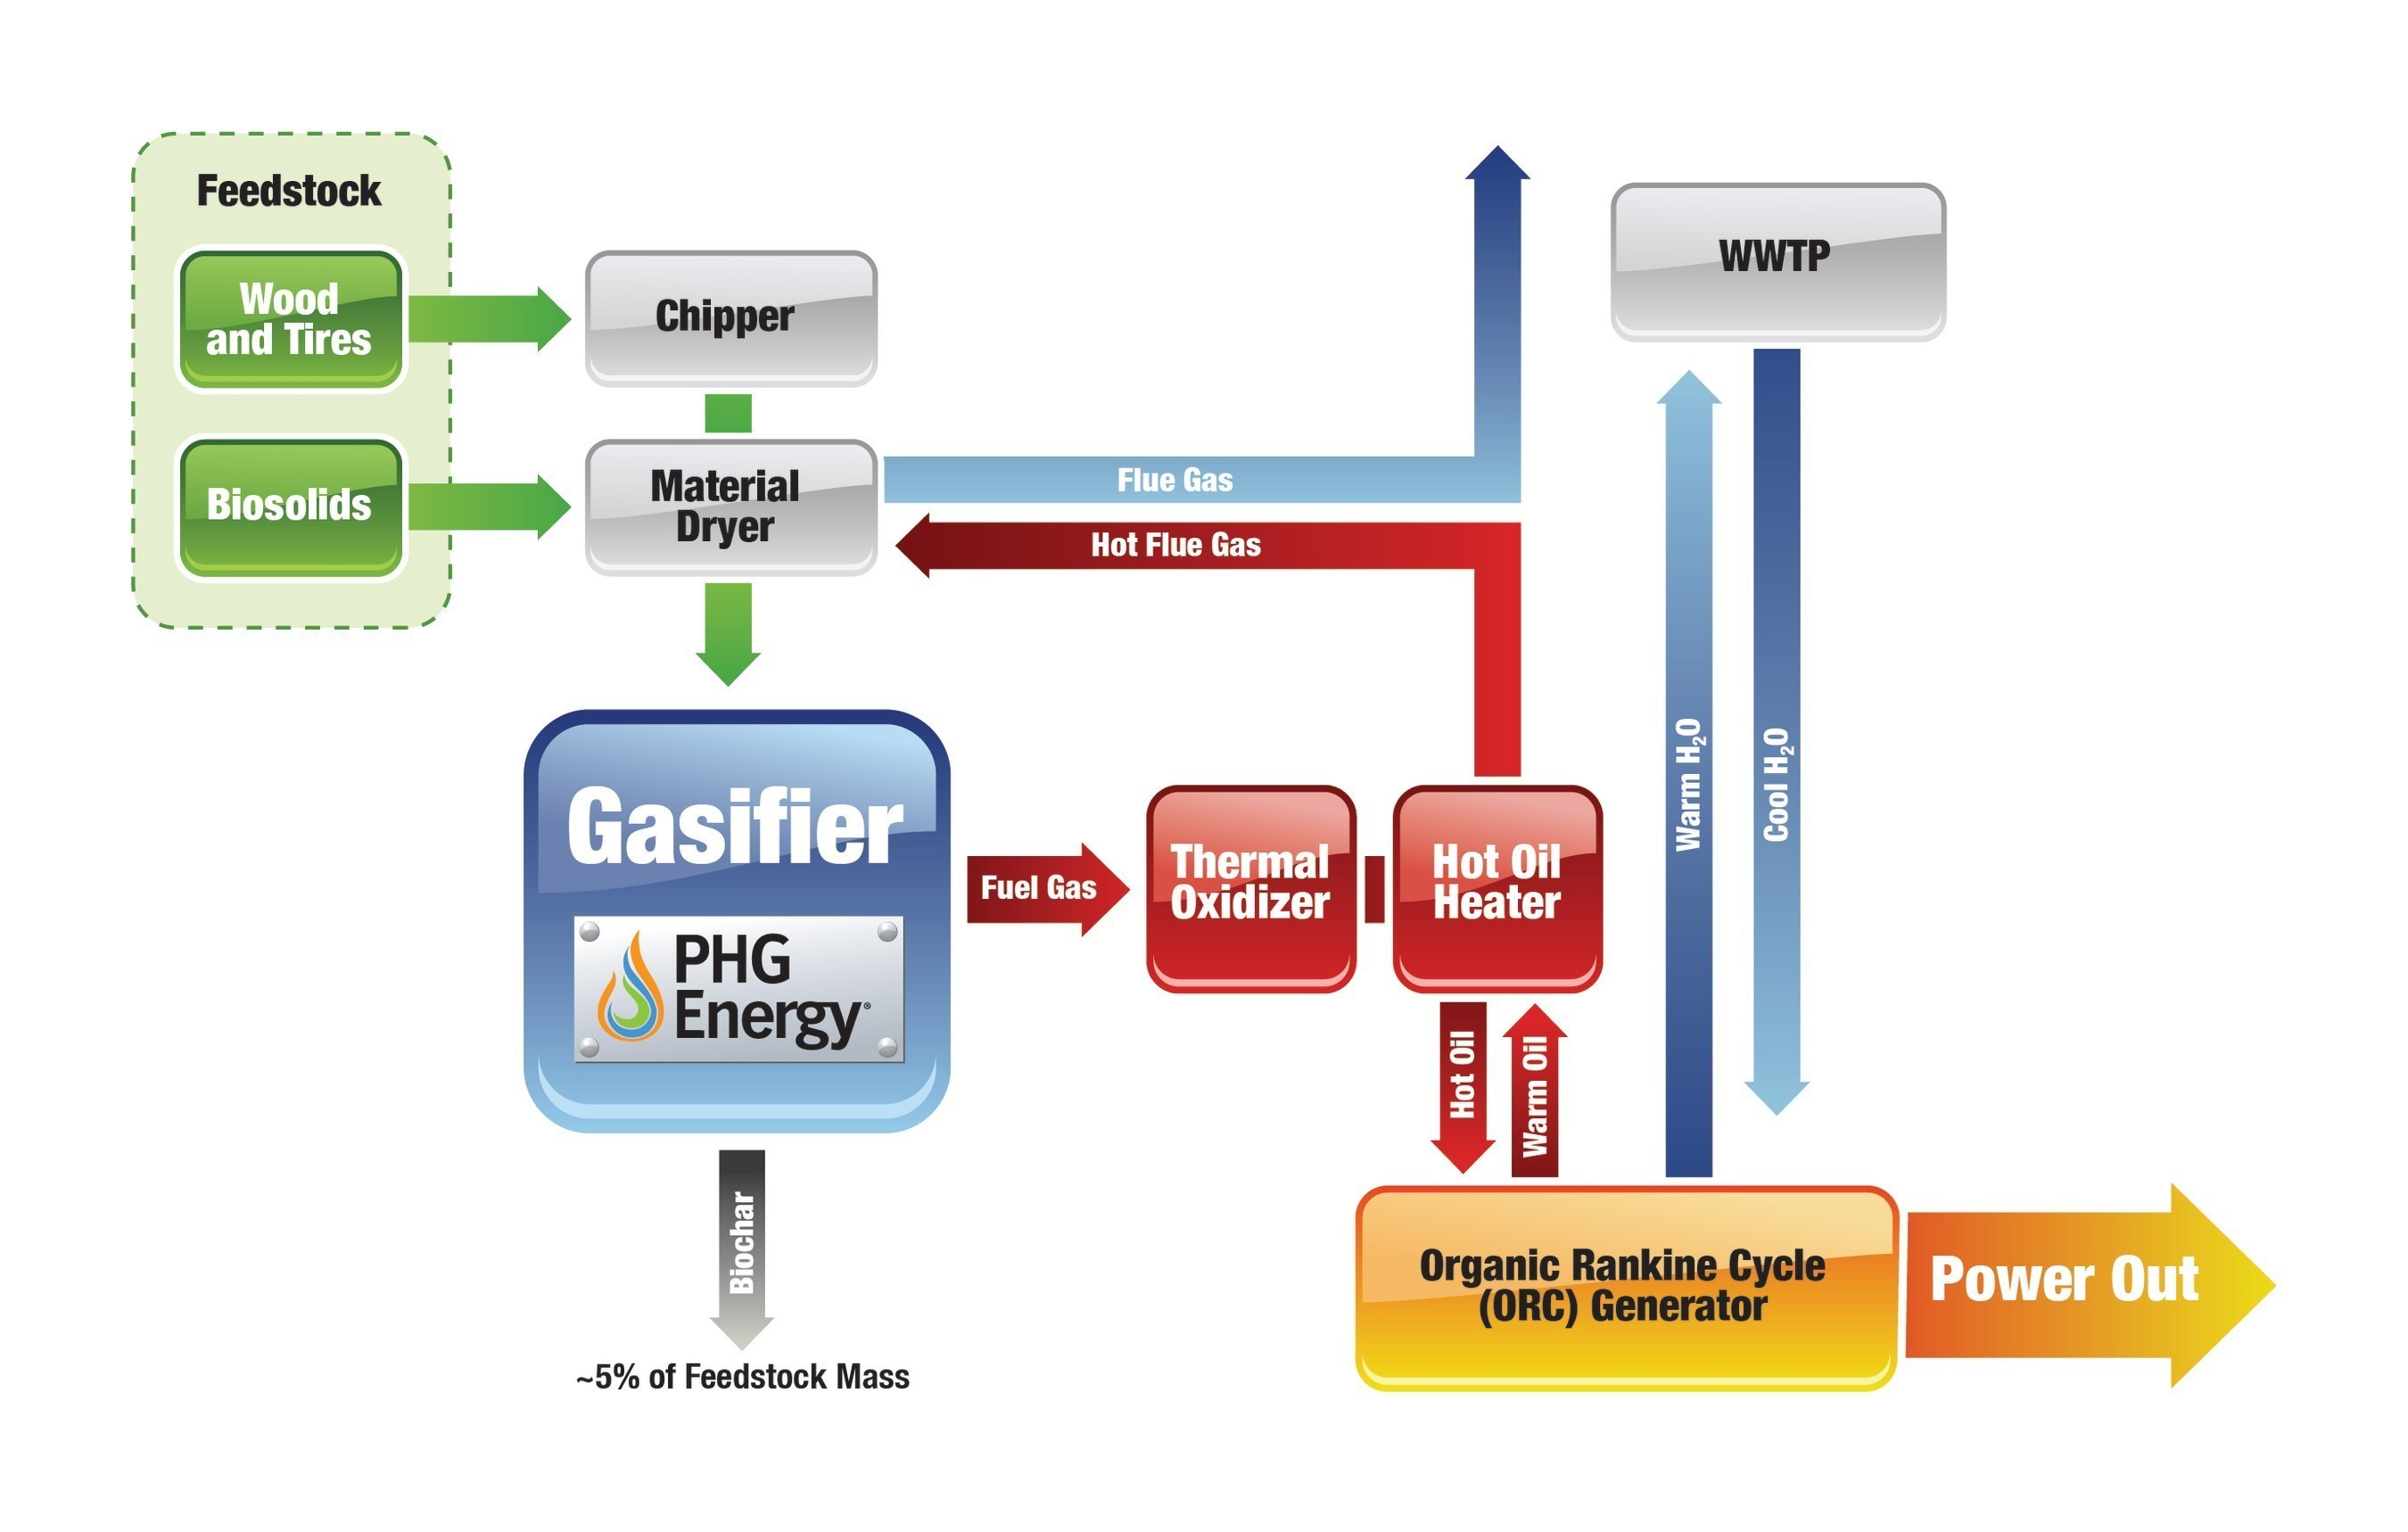 PHG Energy's waste-to-energy technology is a downdraft gasification plant that will cleanly convert up to 64 tons per day of blended waste wood, scrap tires and sewer sludge into a fuel gas that will generate up to 300Kw of electricity.